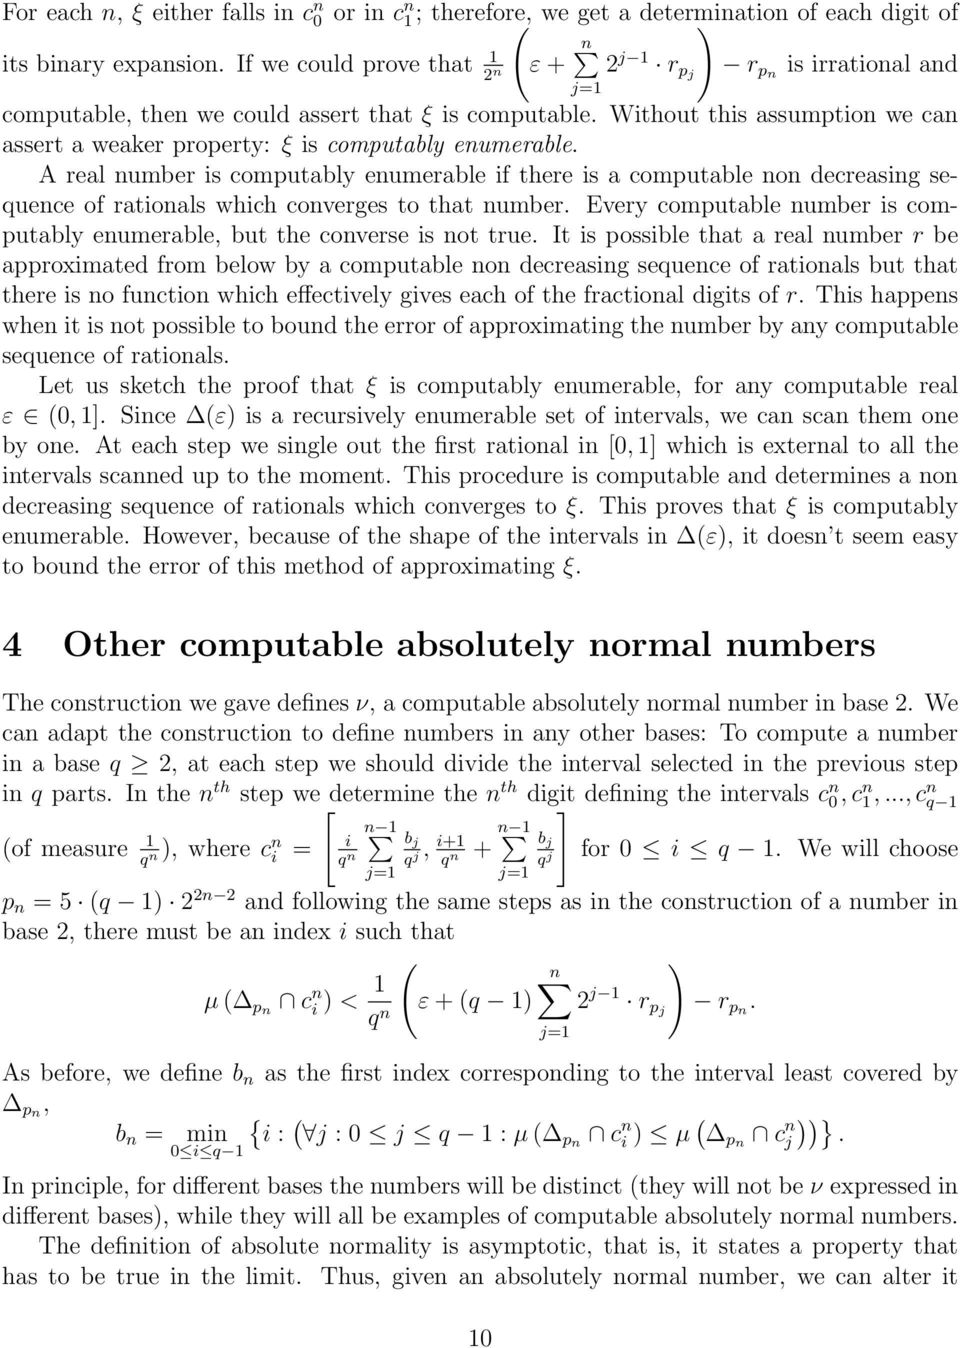 A real number is computably enumerable if there is a computable non decreasing sequence of rationals which converges to that number.